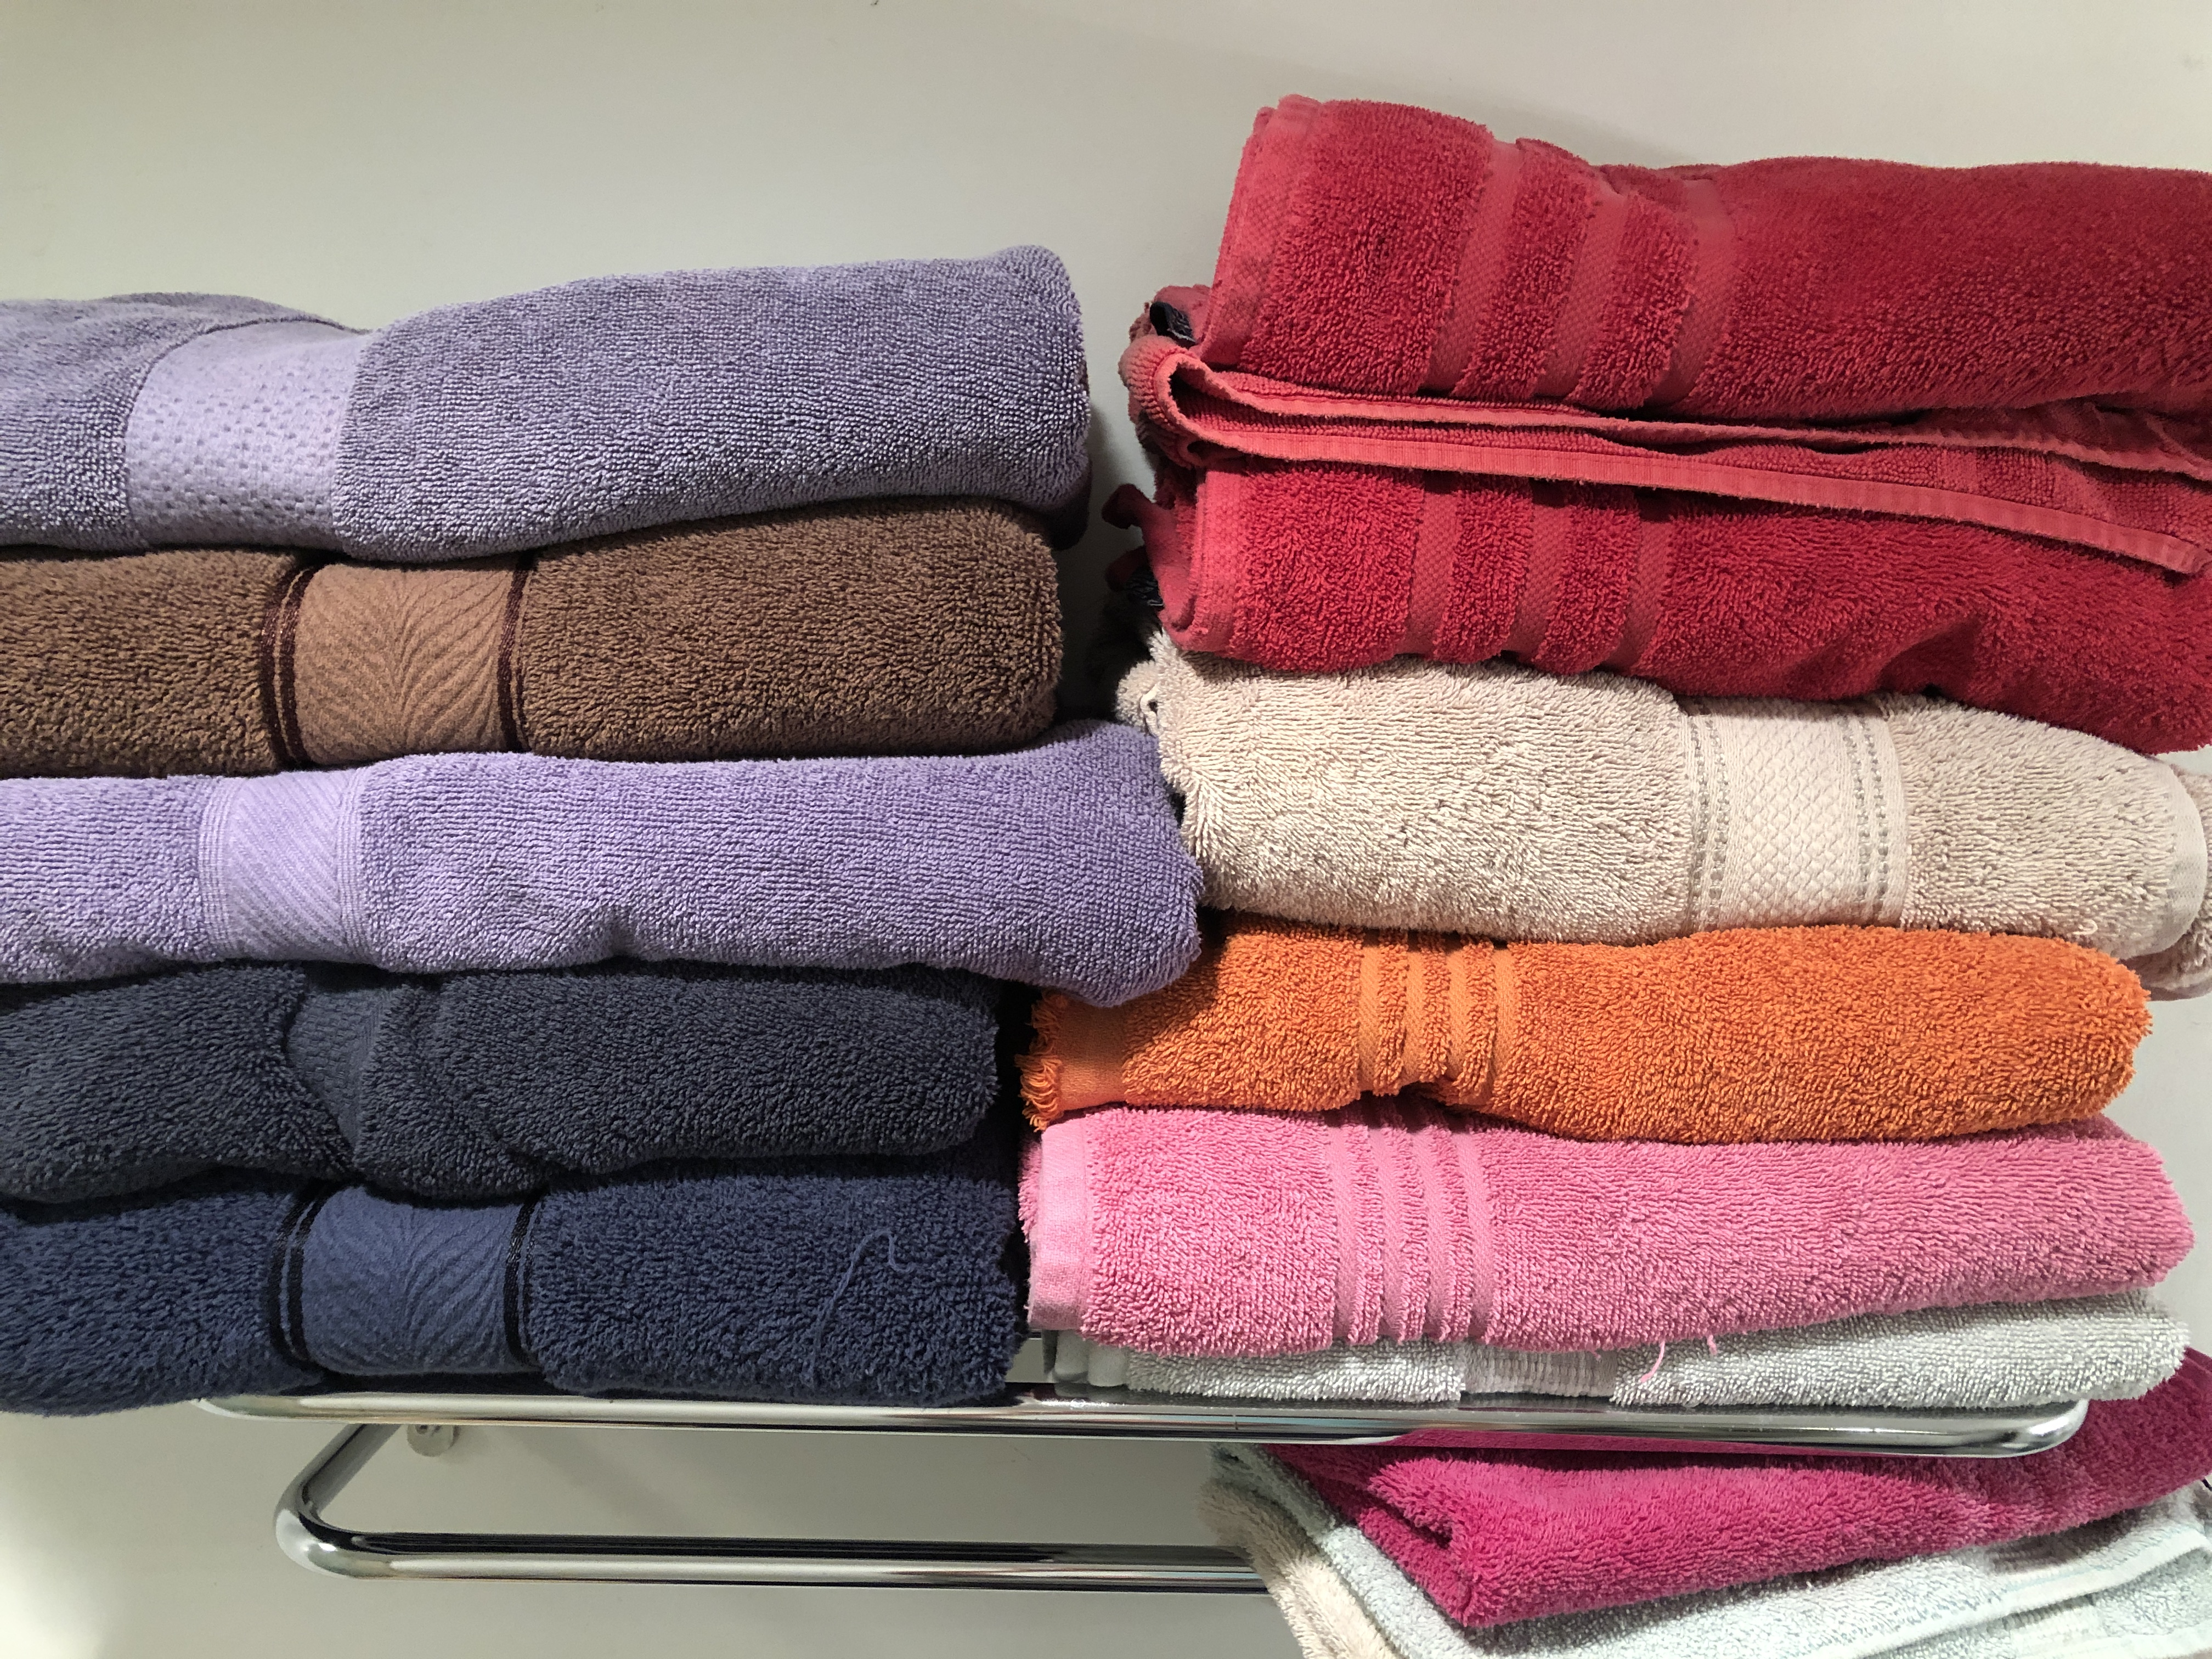 My bath towels lead a double life - in the house and in the barn!